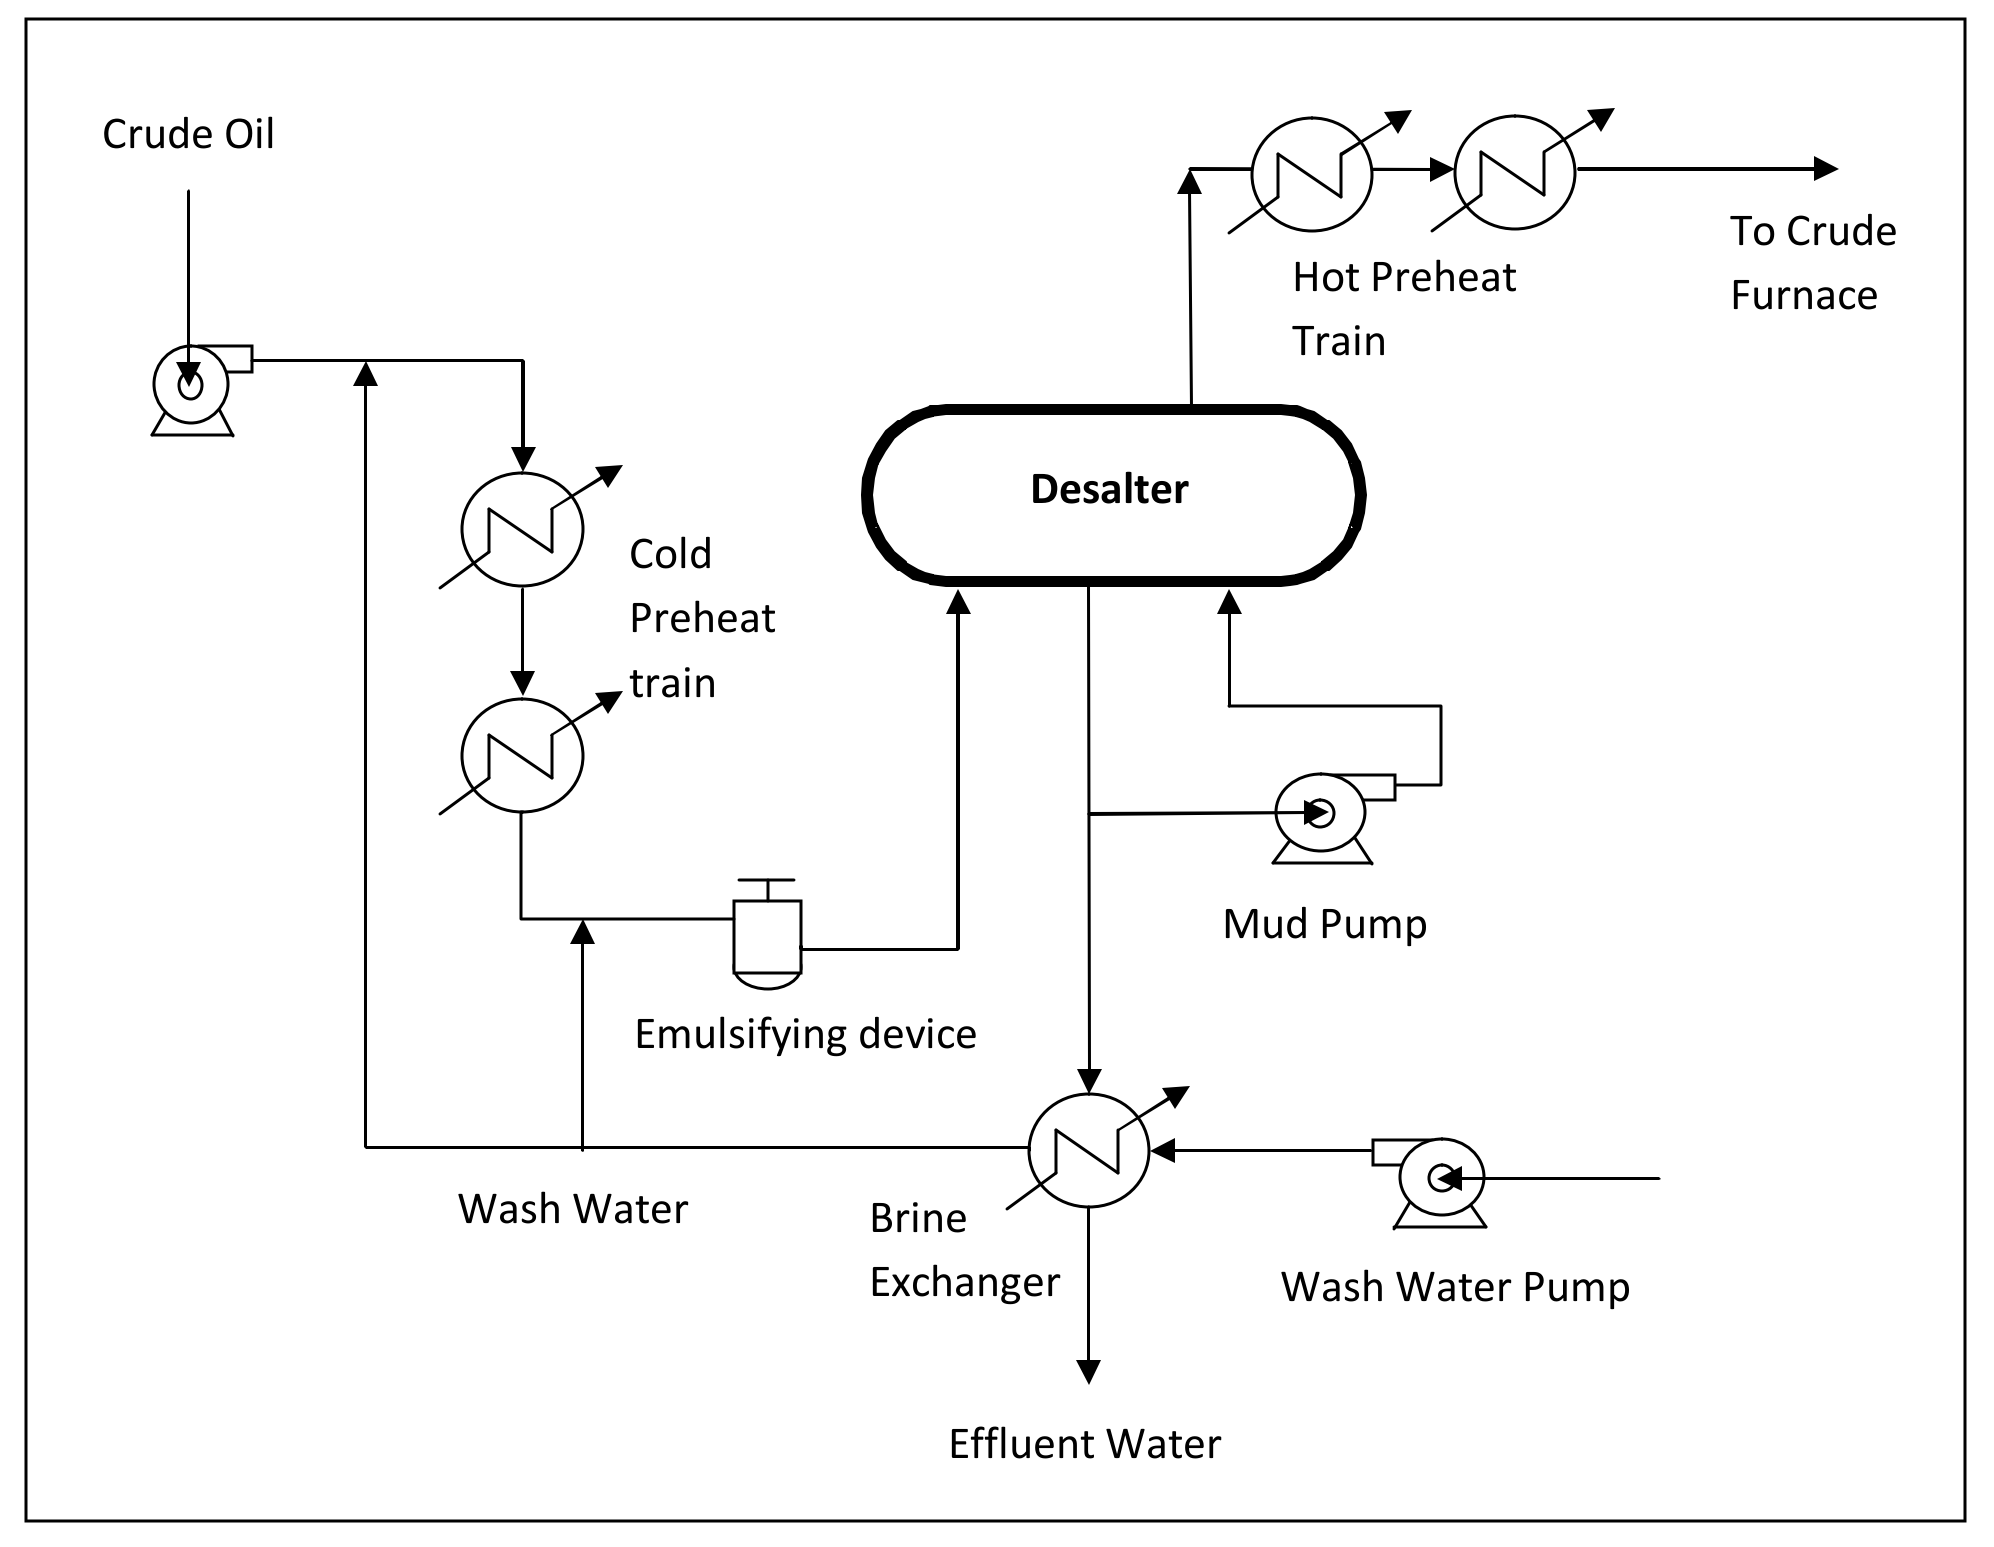 desalting process2 desalting of crude oil in refinery enggcyclopedia Crude Oil Refinery at crackthecode.co